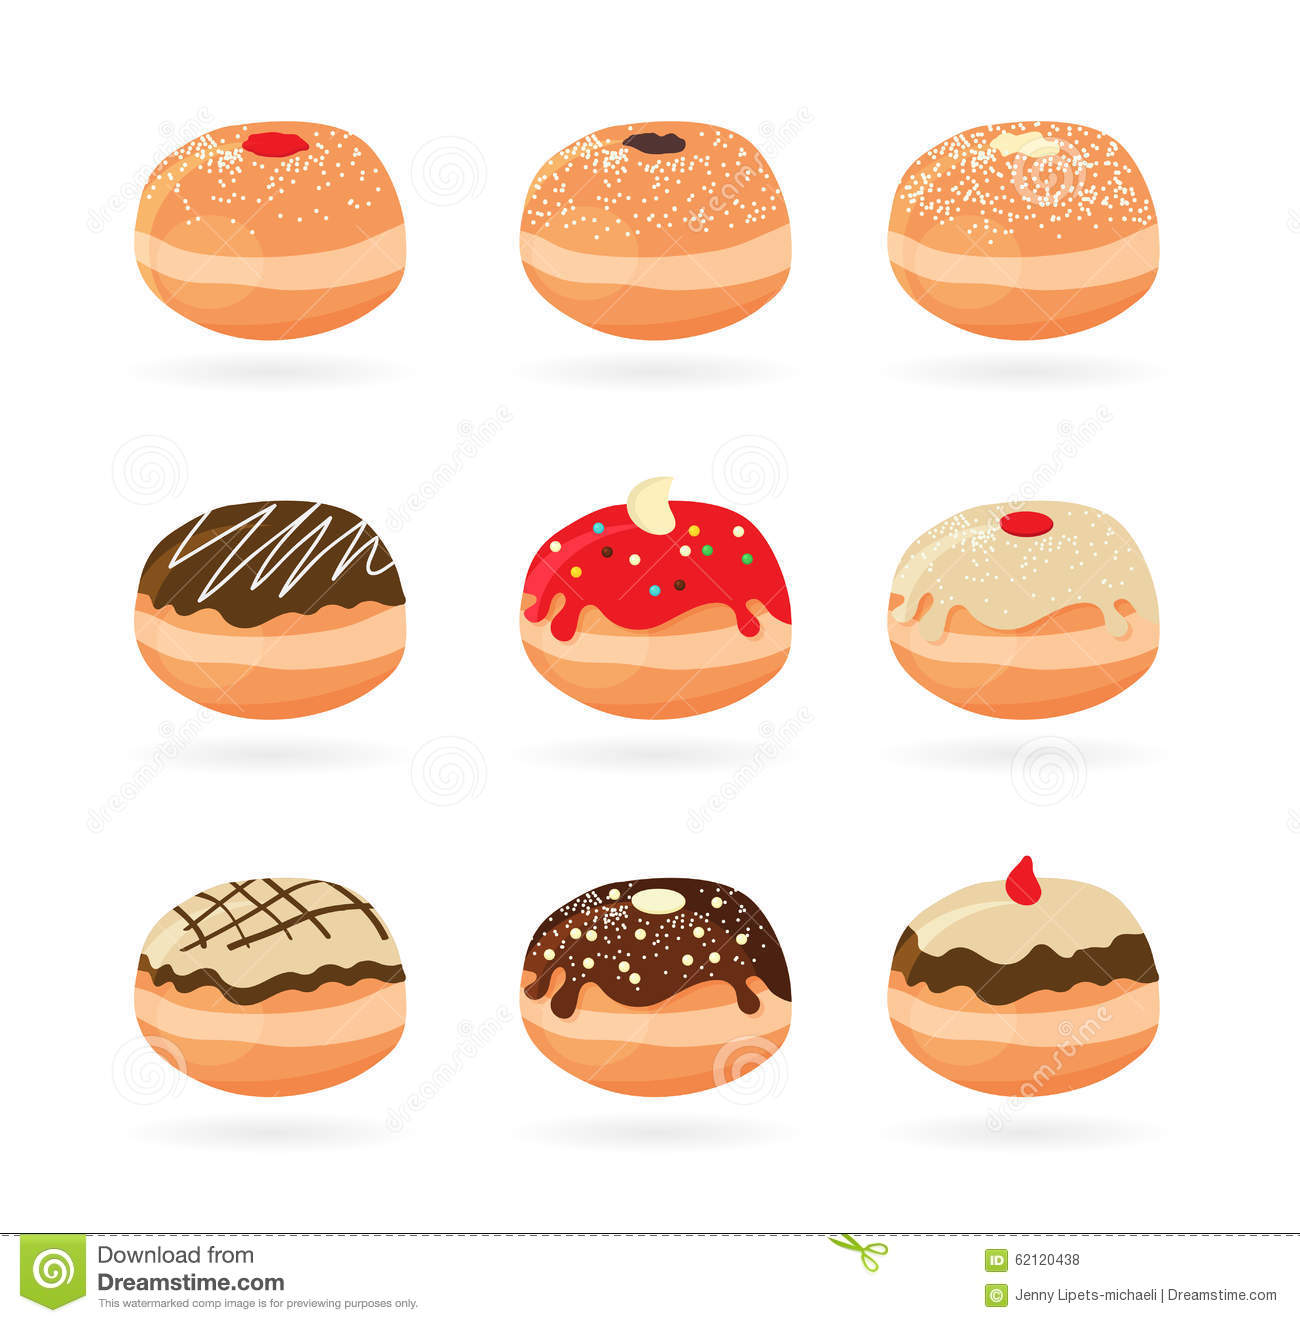 Hanukkah doughnut . Traditional jewish holiday food. illustratio.